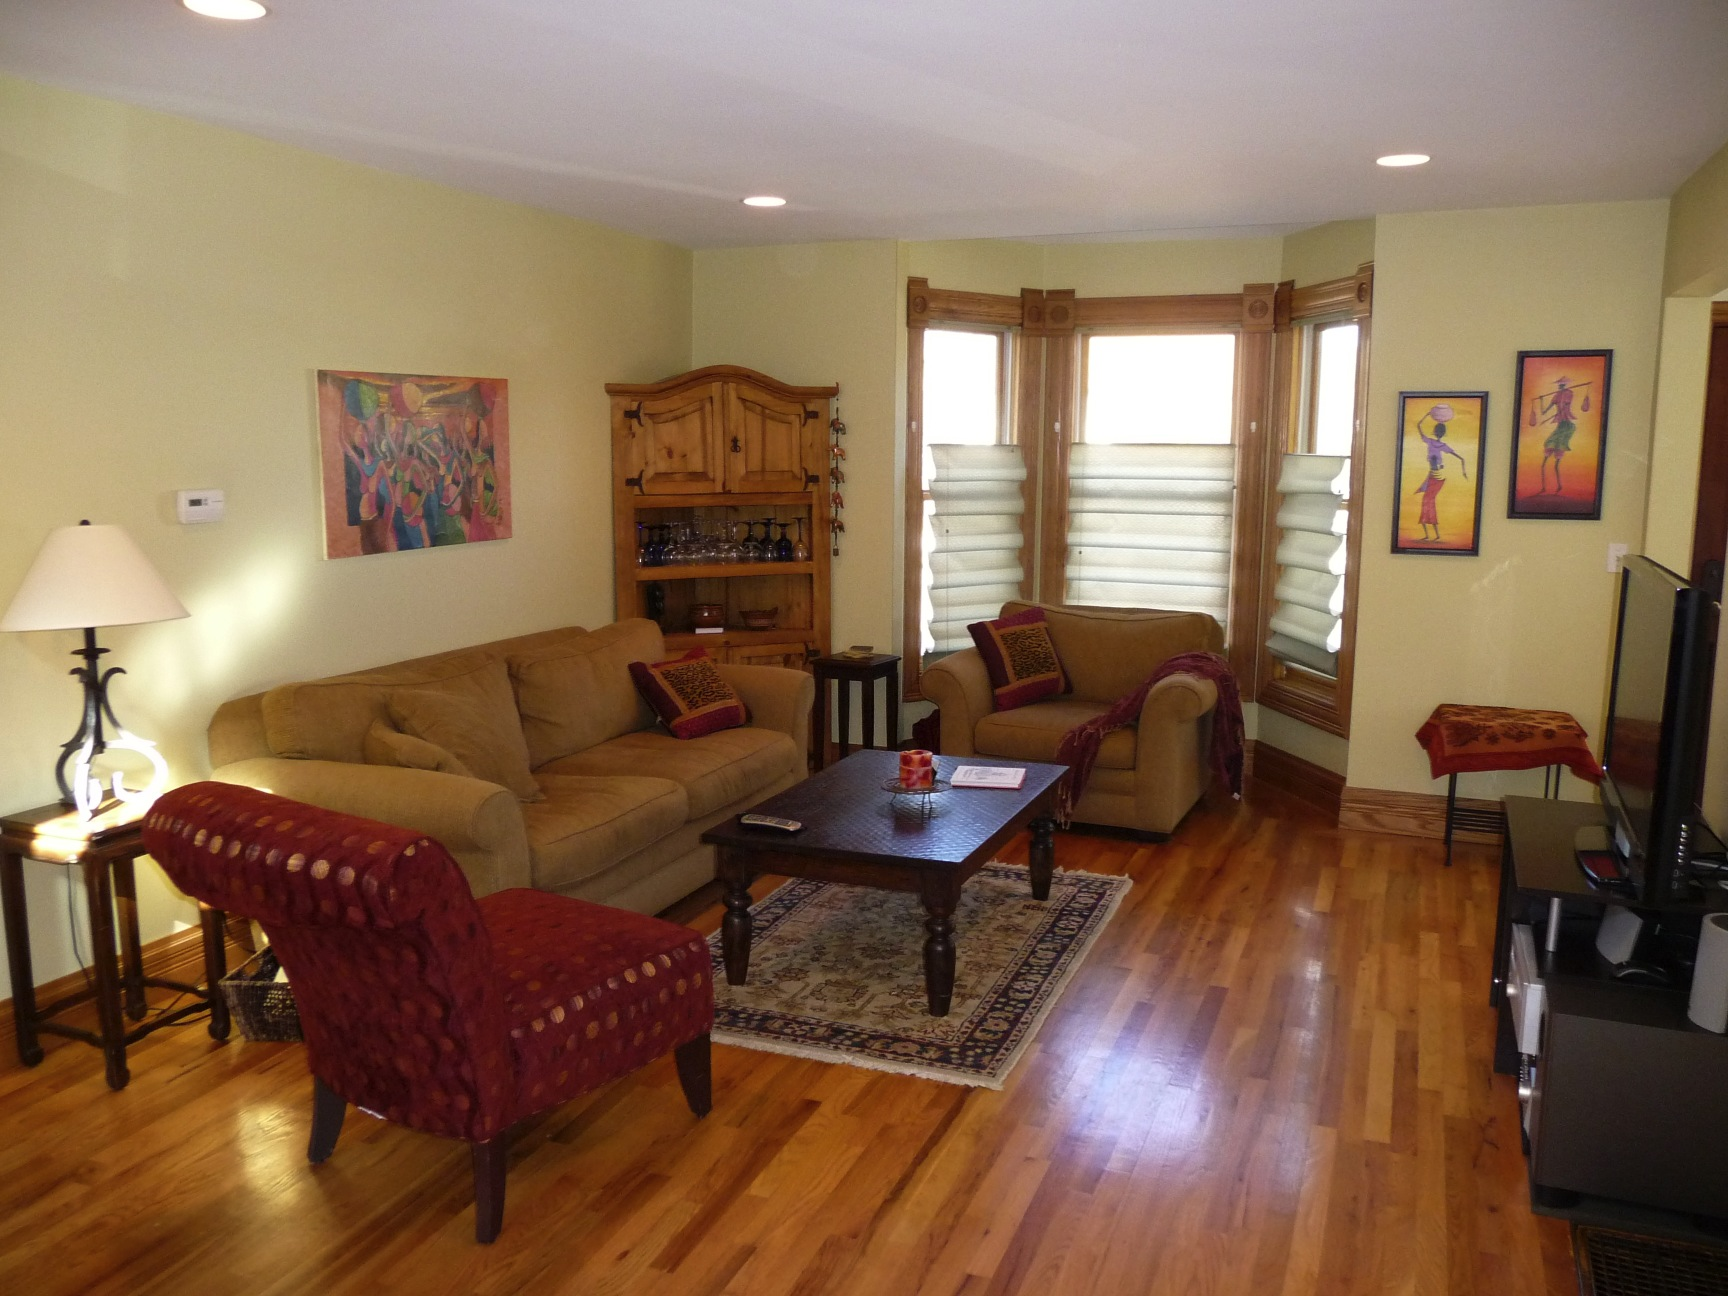 Small living room ideas Make your small living room glow